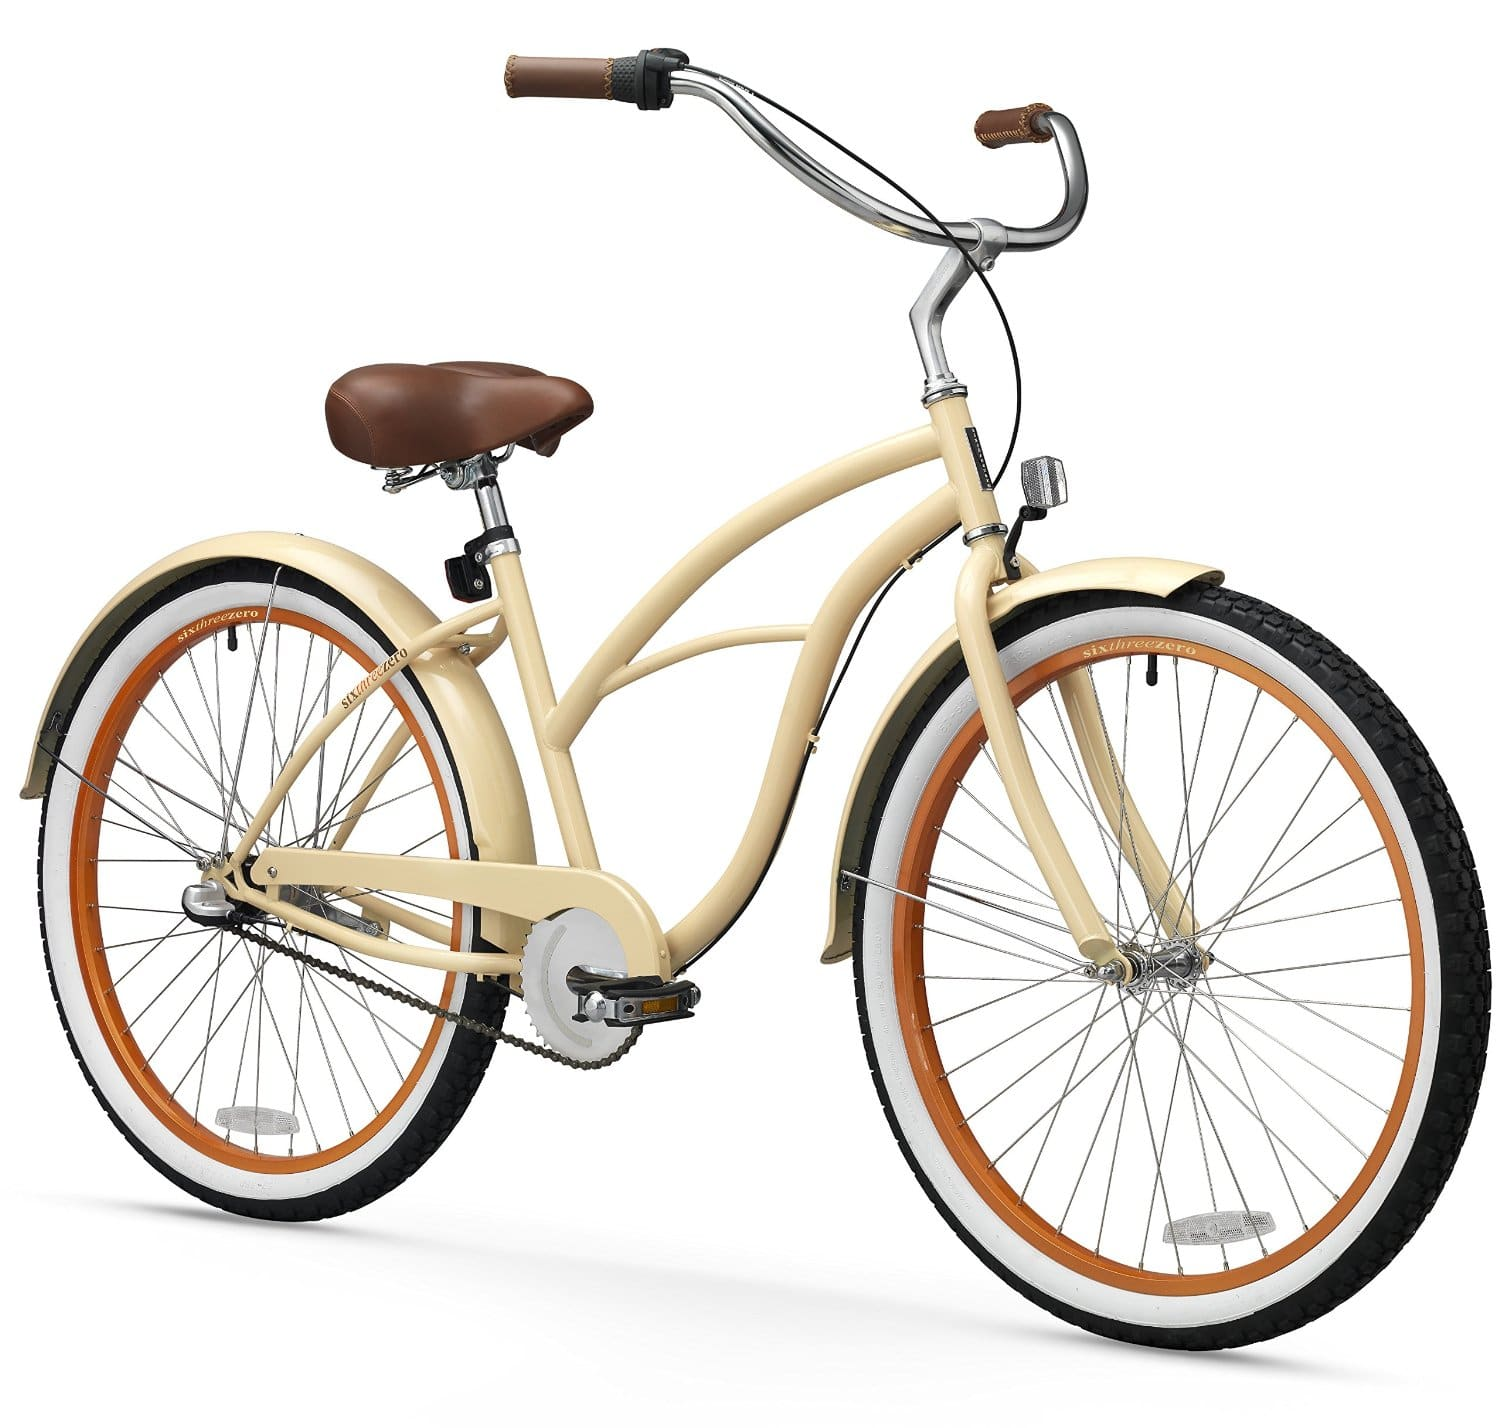 Top 10 Best Cruiser Bikes For Men And Women In 2020 Review